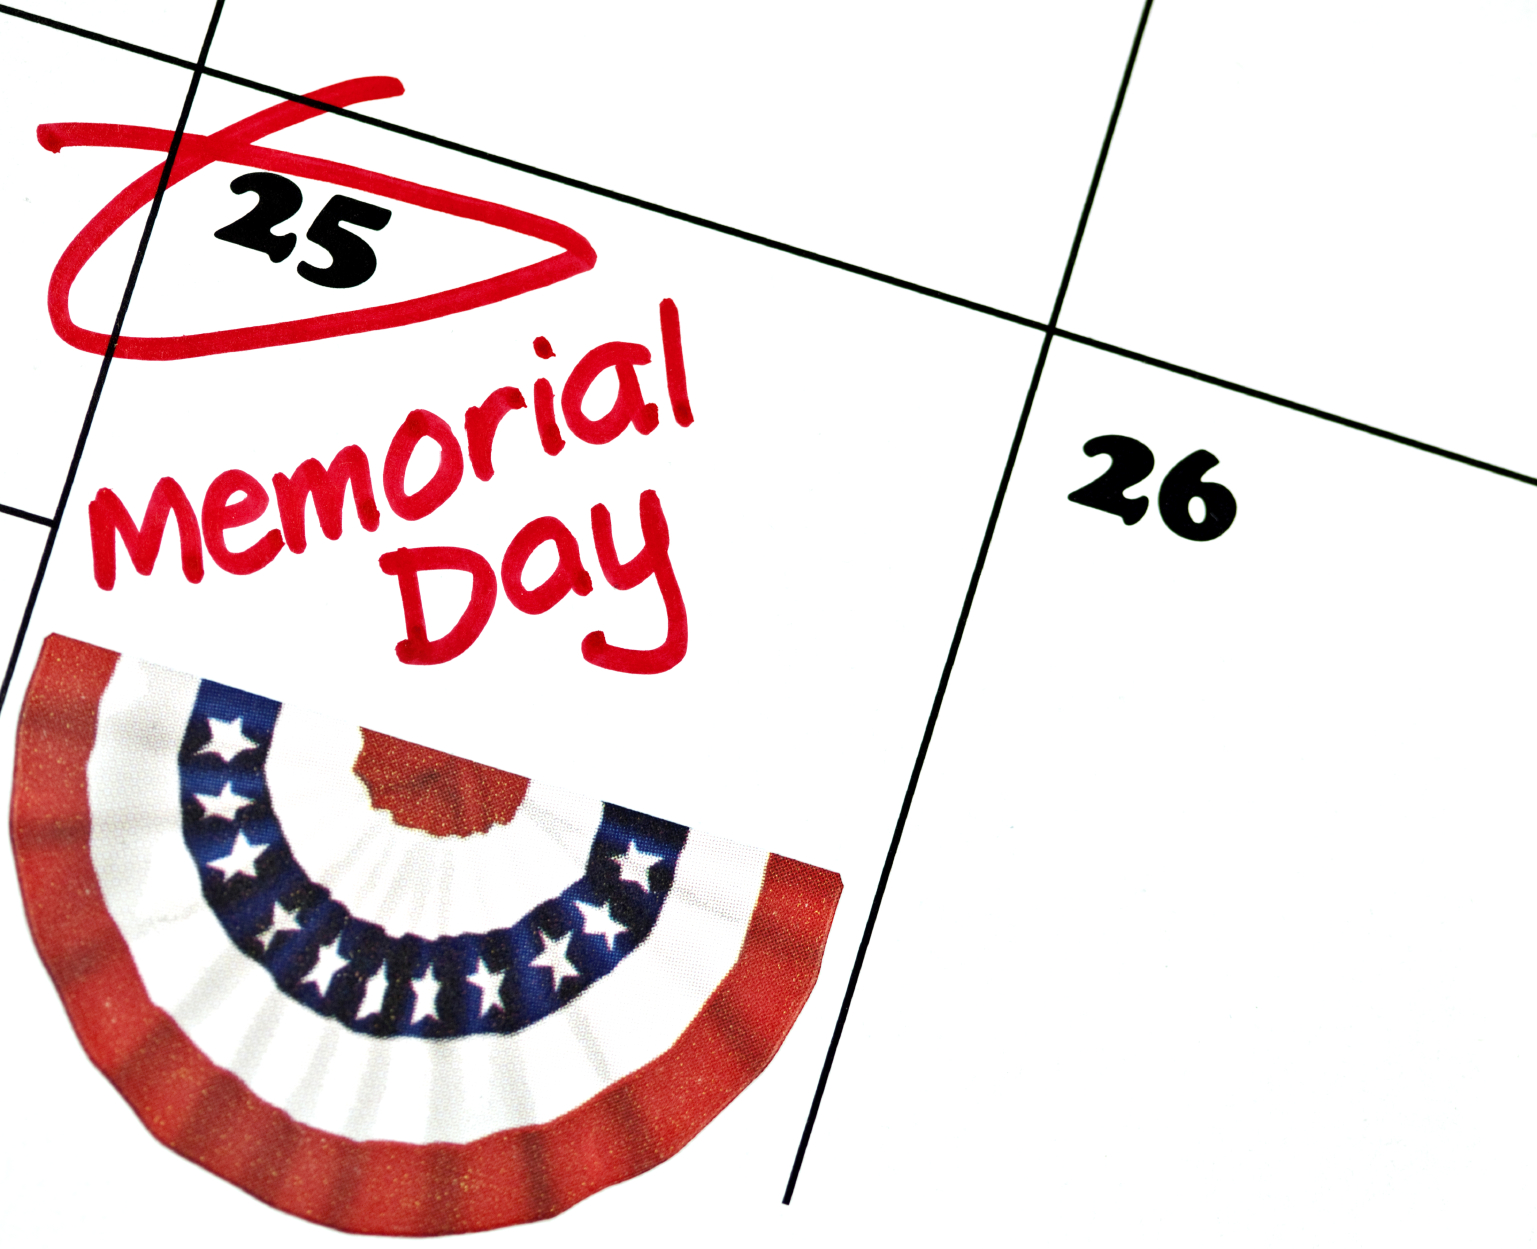 Notice: Memorial Day Weekend